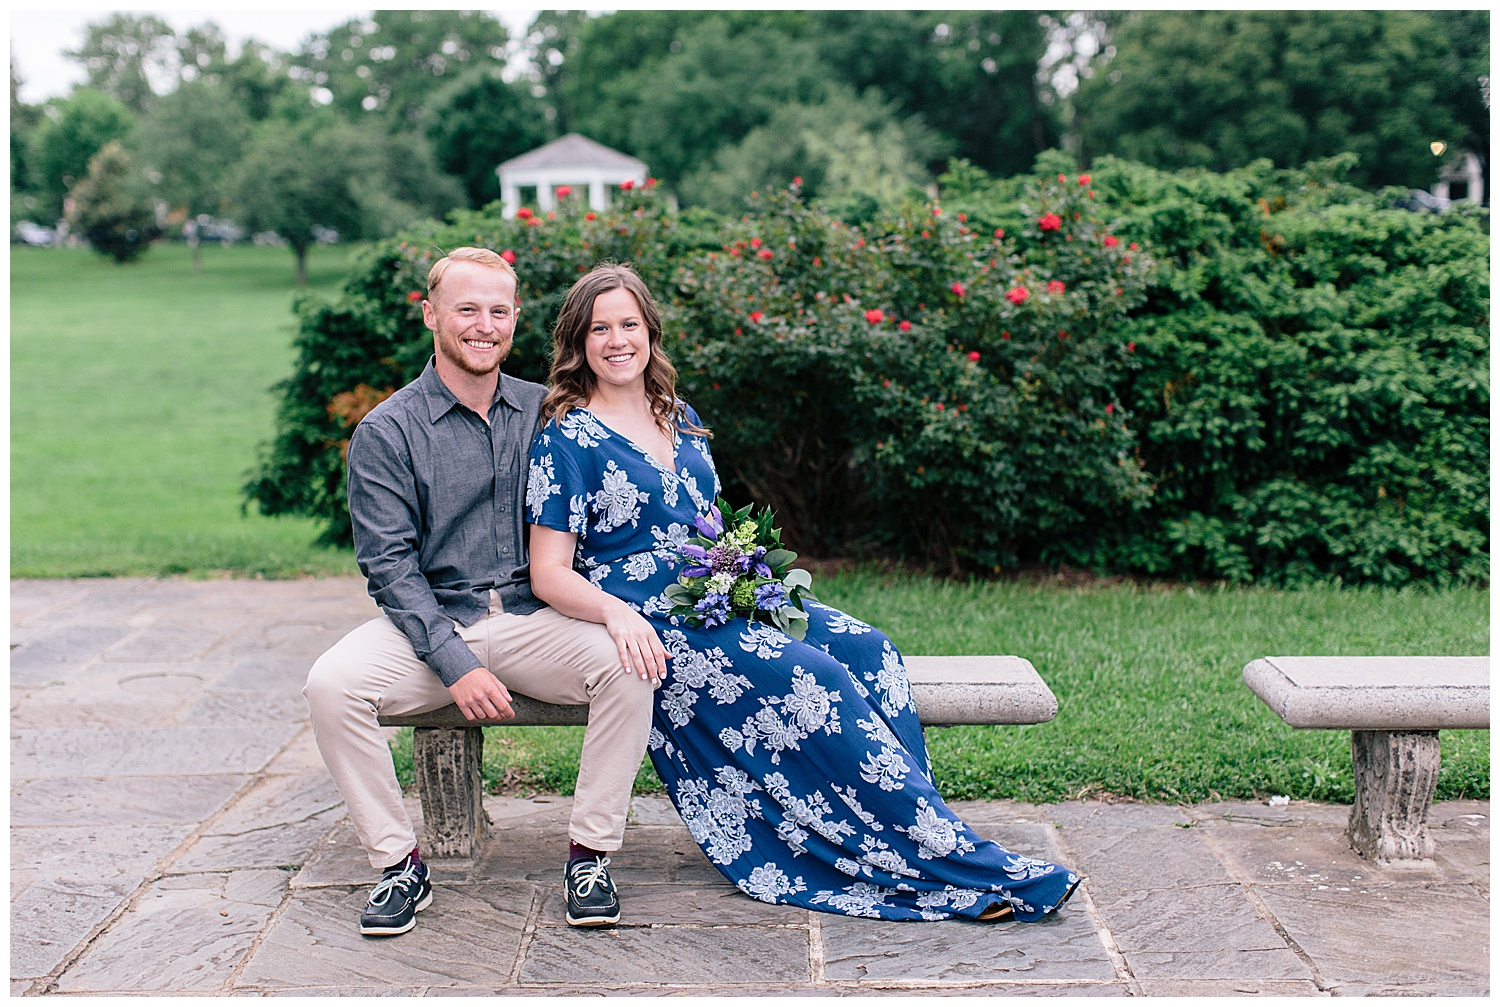 emily-belson-photography-frederick-md-engagement-27.jpg